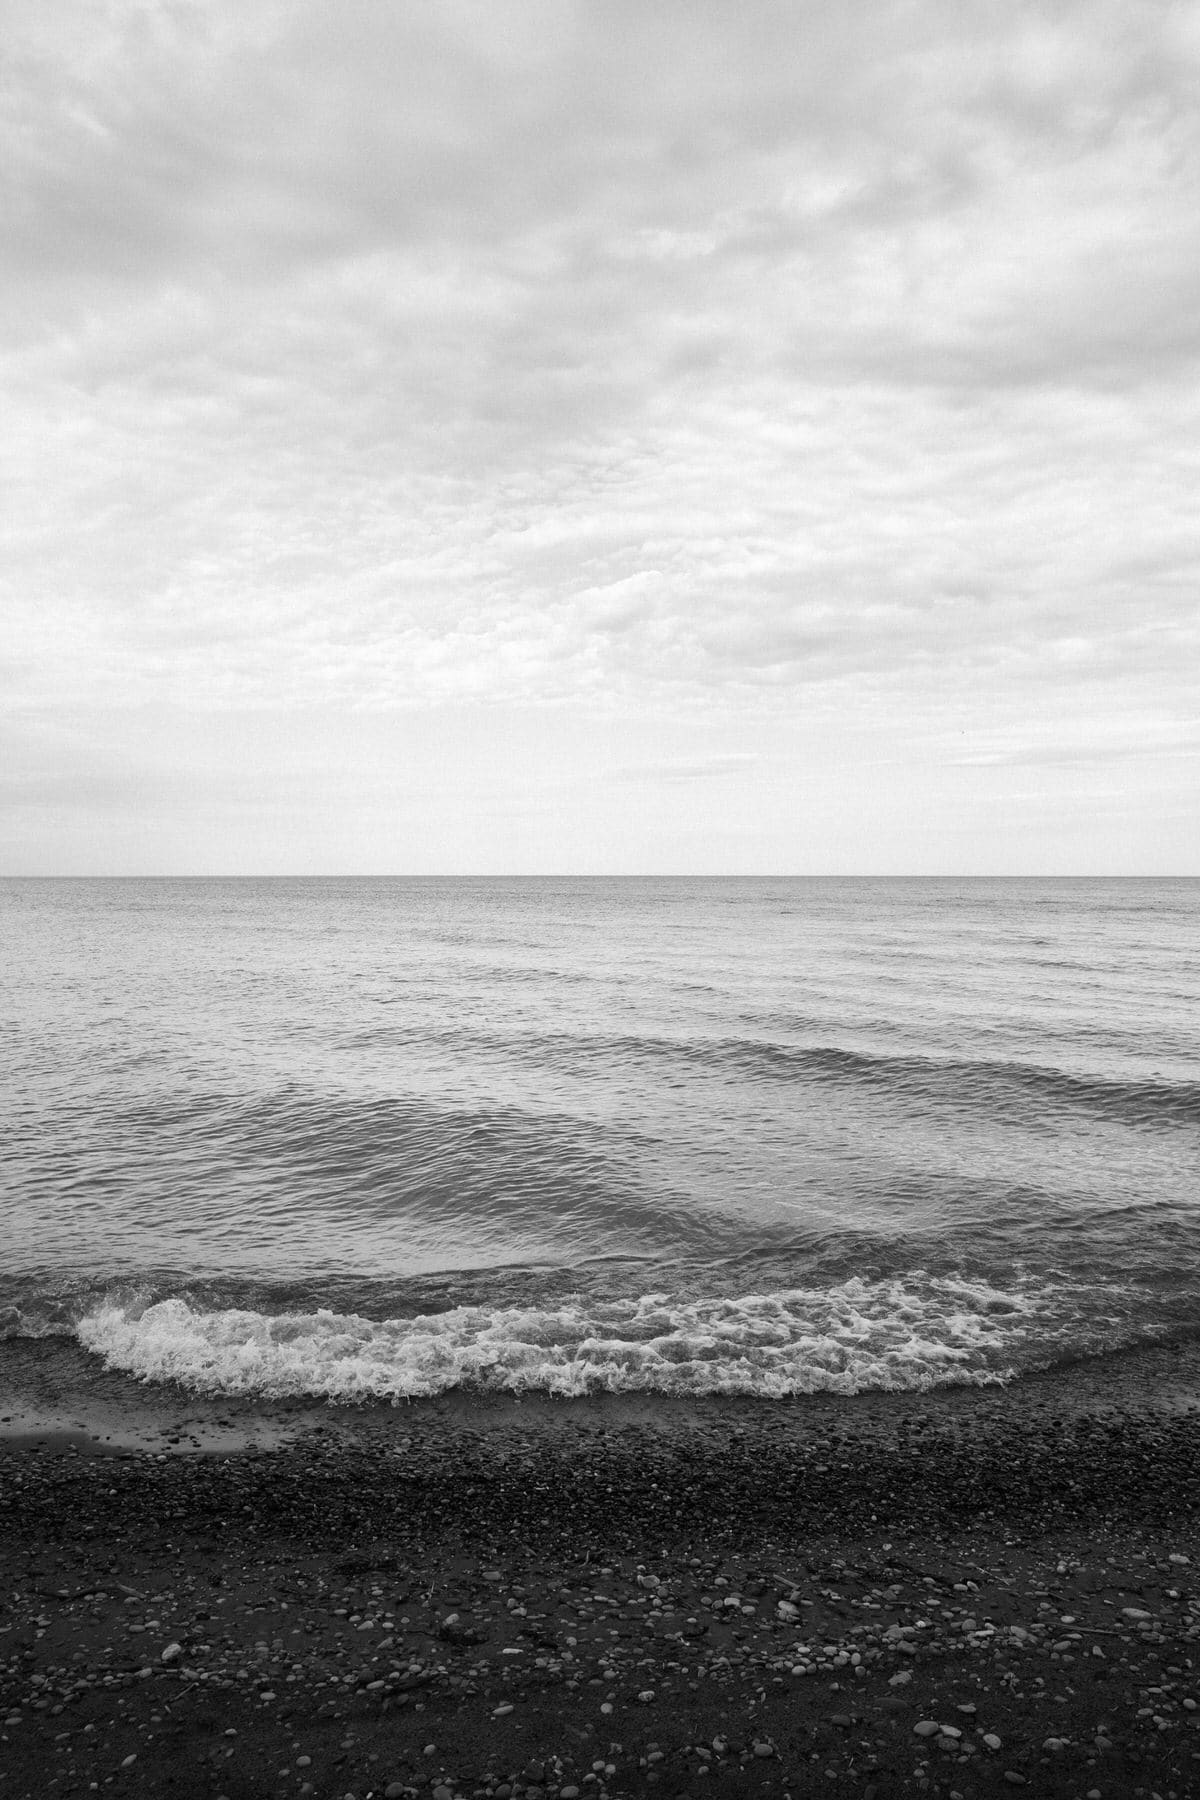 Lake-Michigan-Cottage-Wisconsin-black-and-white-fine-art-photography-by-Studio-L-photographer-Laura-Schneider-_9986